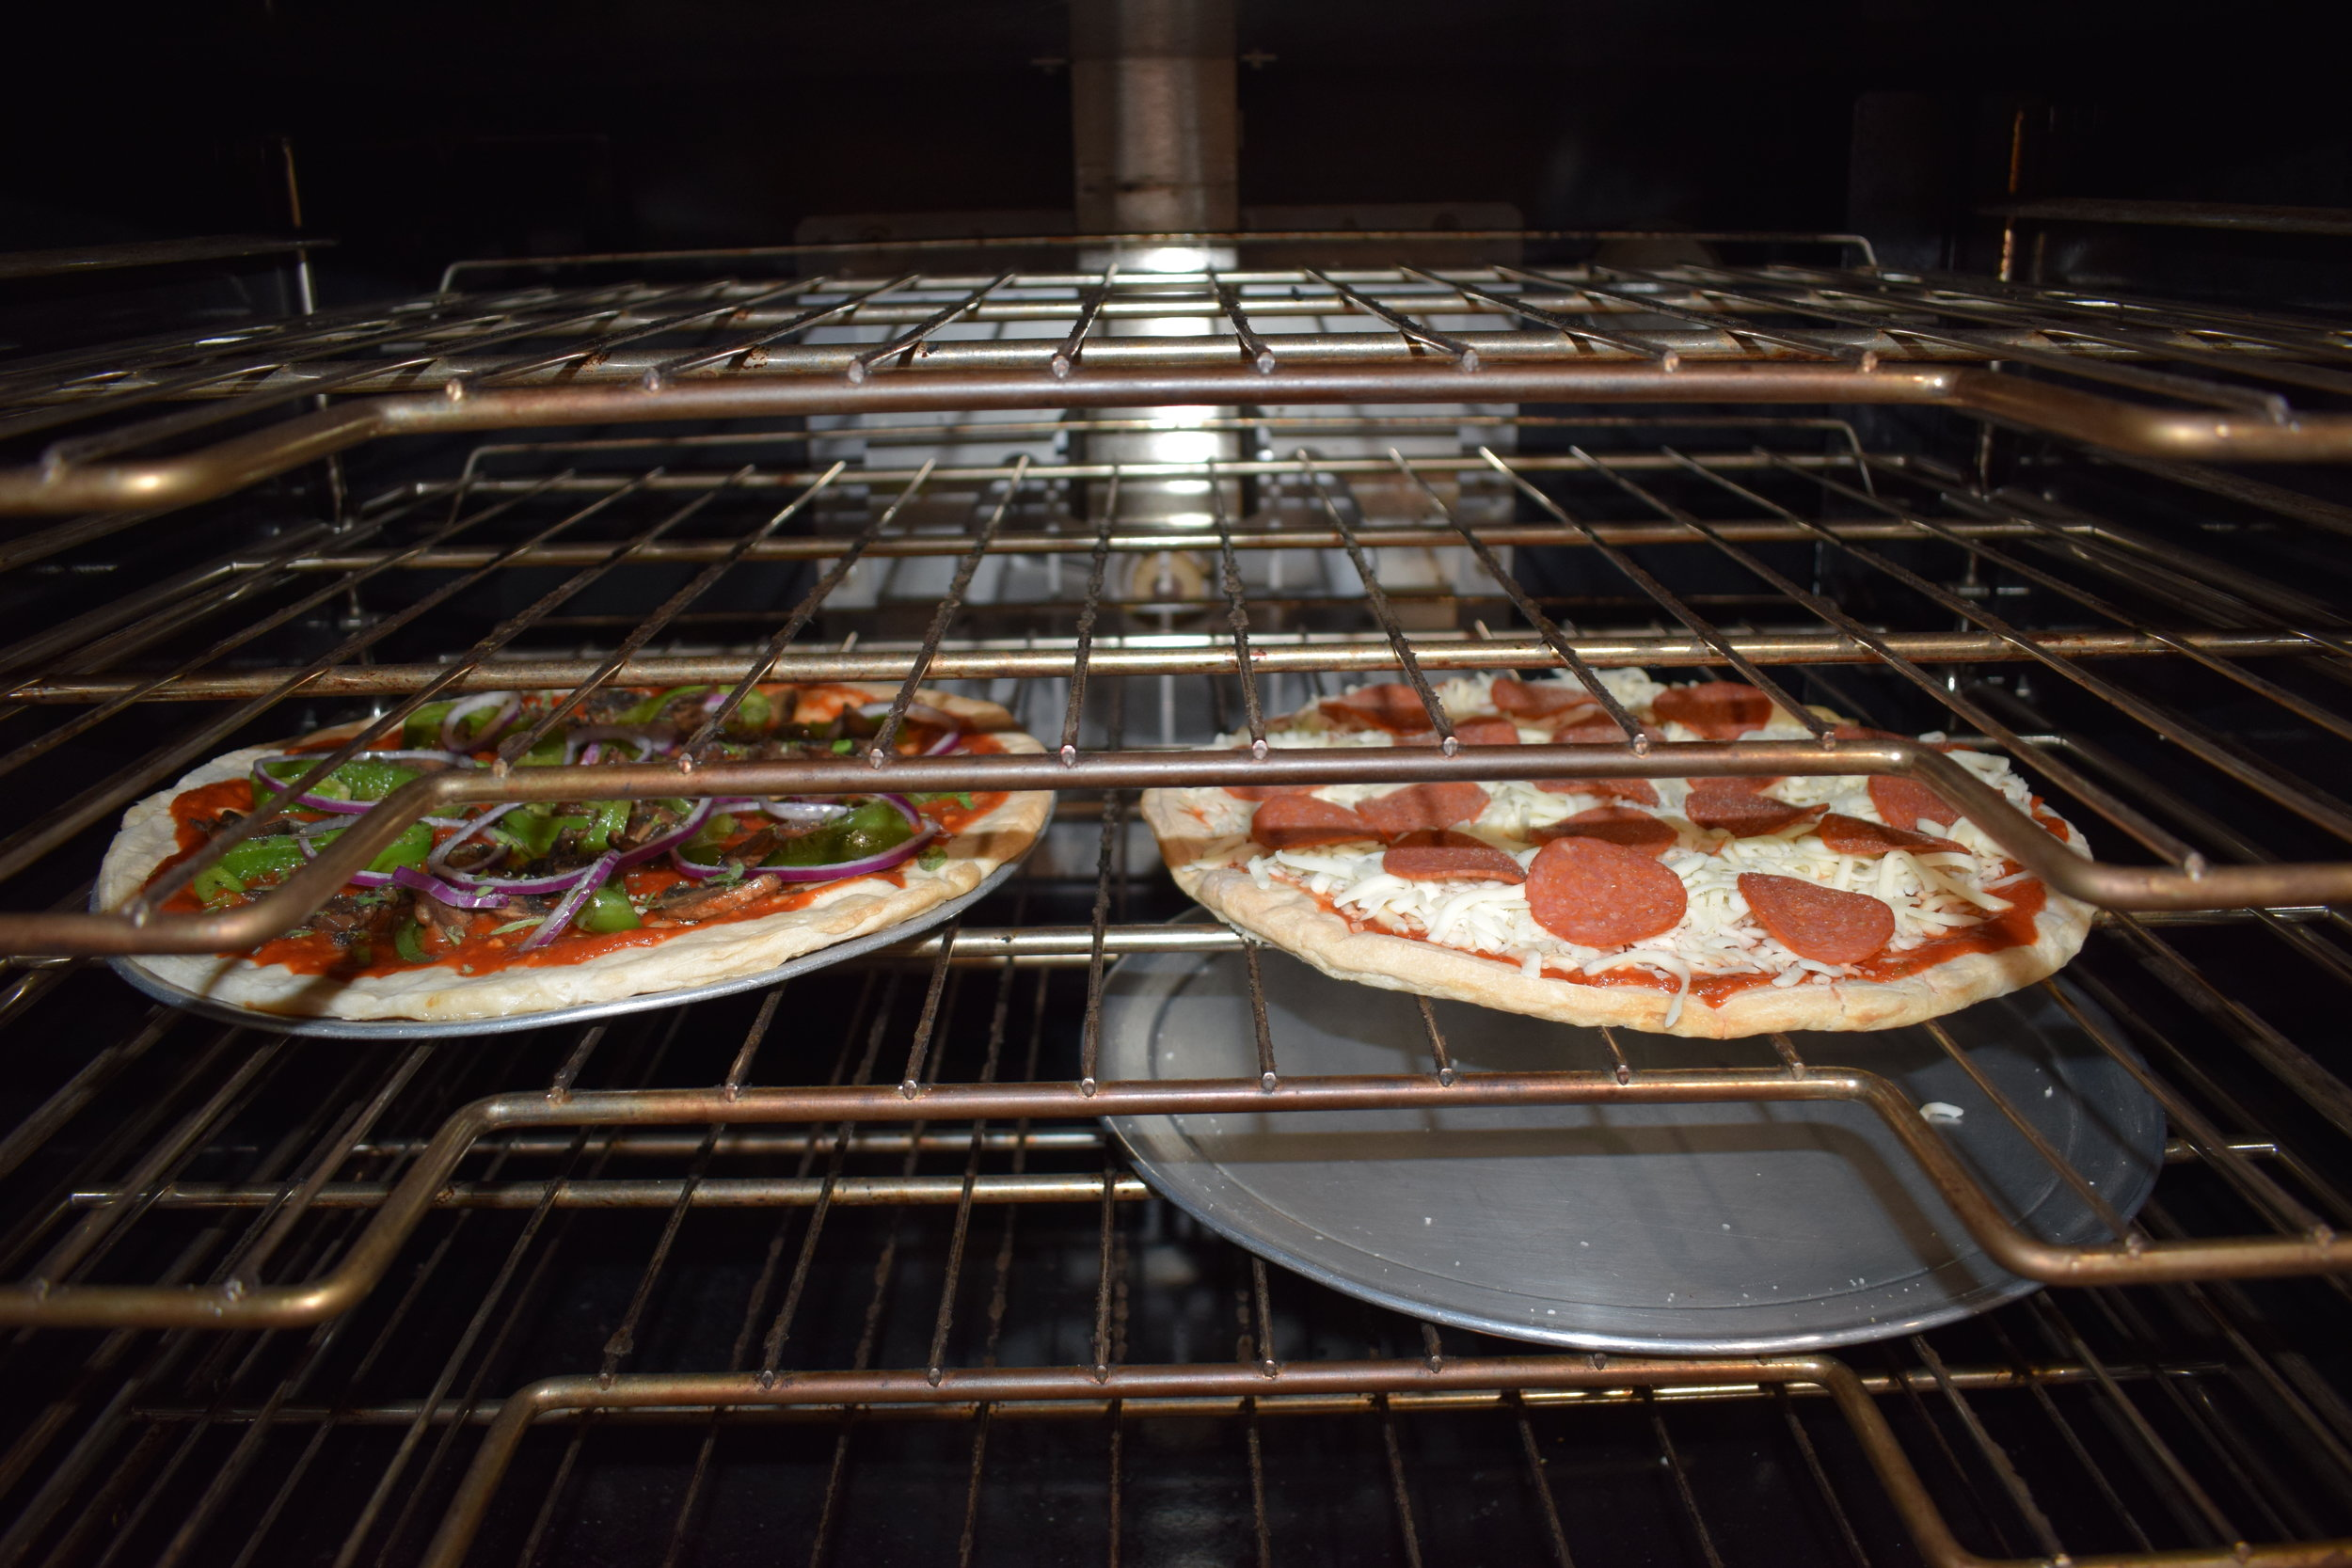 Bake on a pan for a softer crust, or bake directly on the rack (with a pan on the rack below to prevent spillage) for a crispier crust.